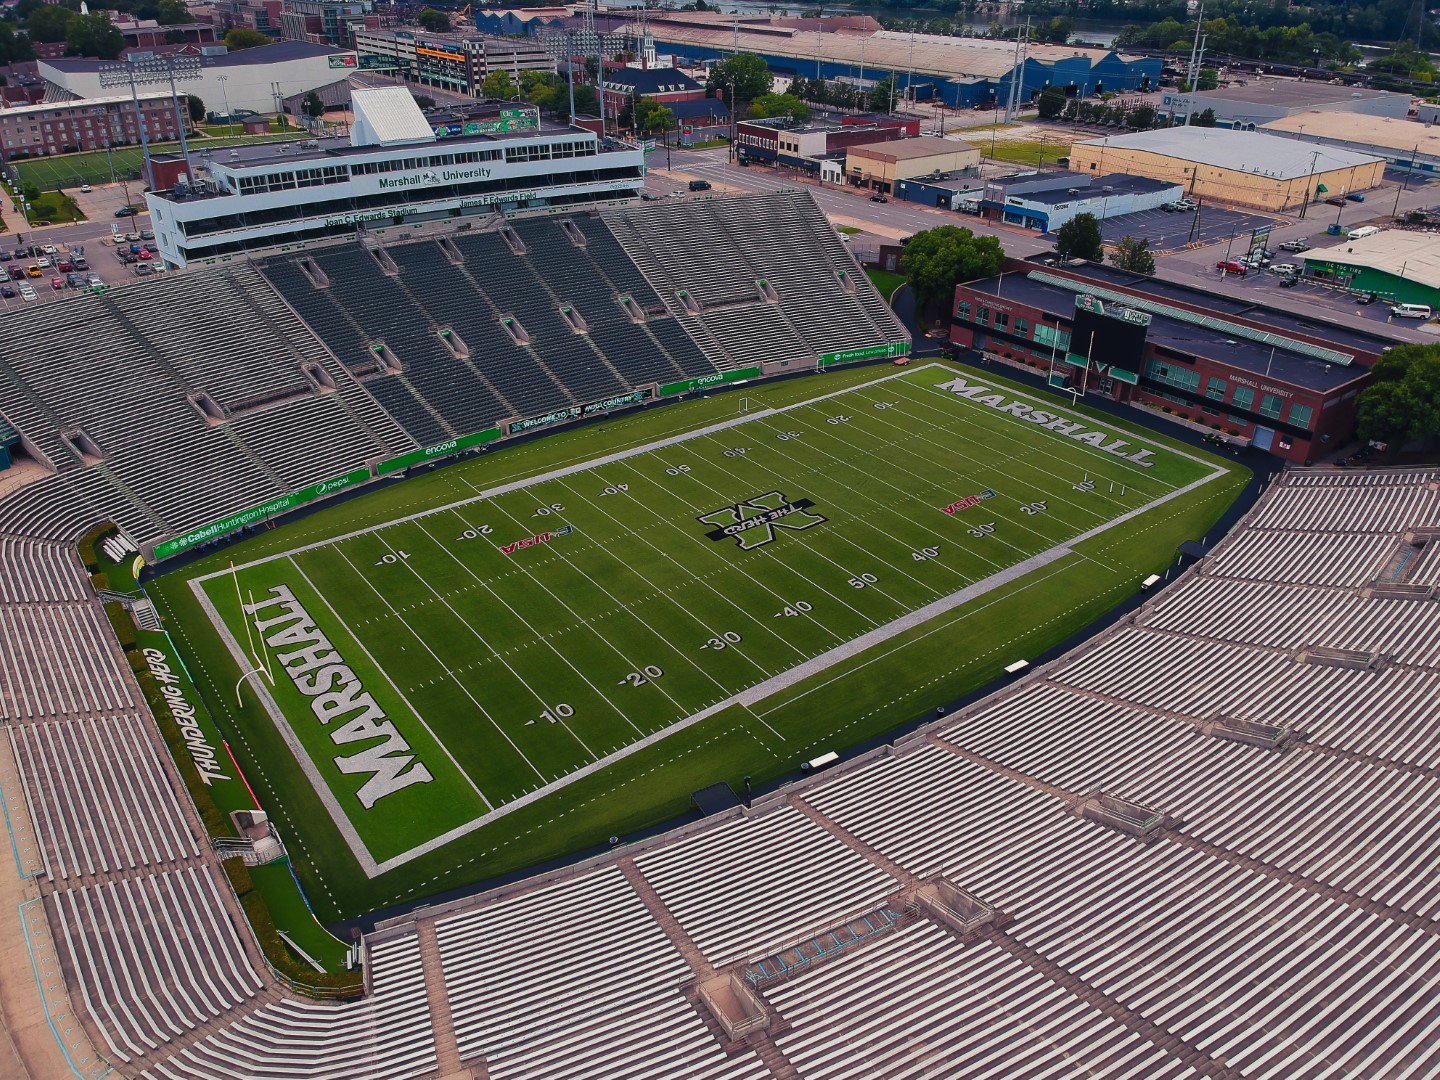 The Thundering Herd playing field